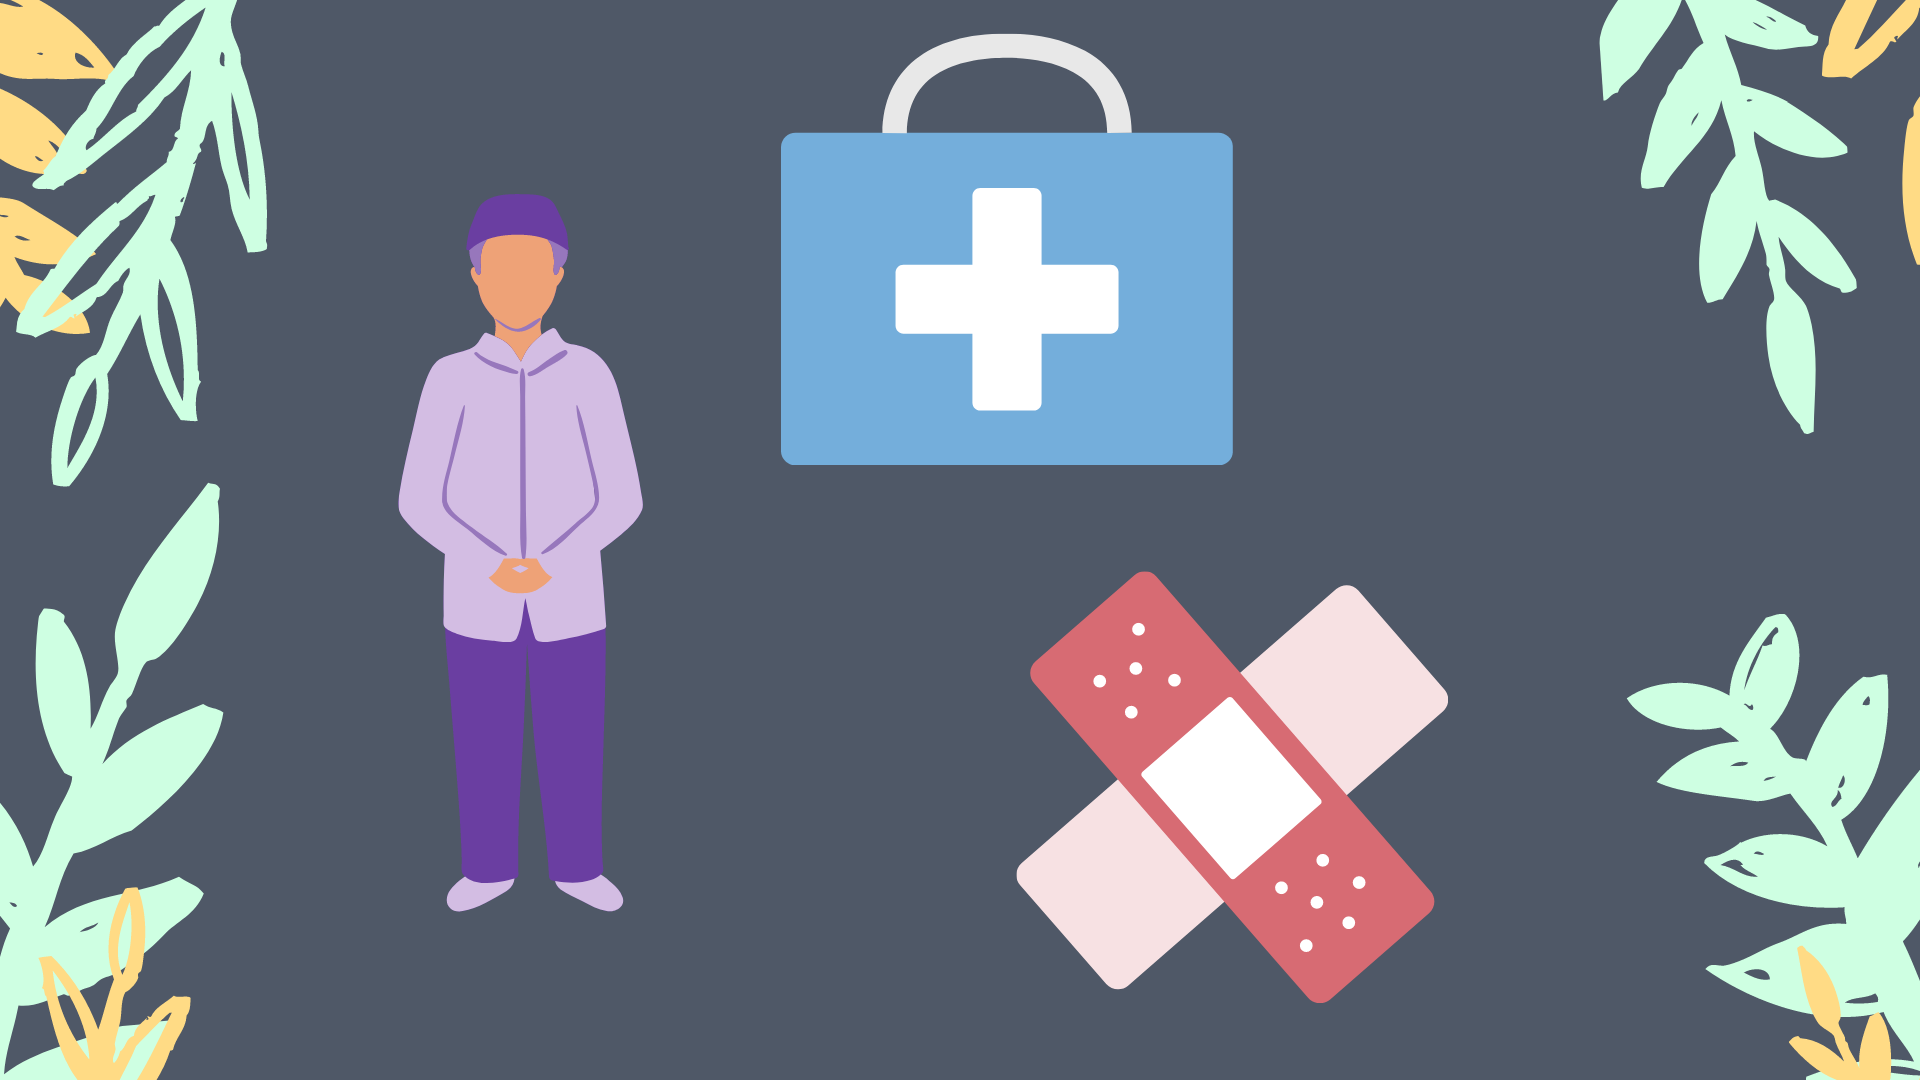 Purple and blue background with drawing of man, health kit, and bandaid